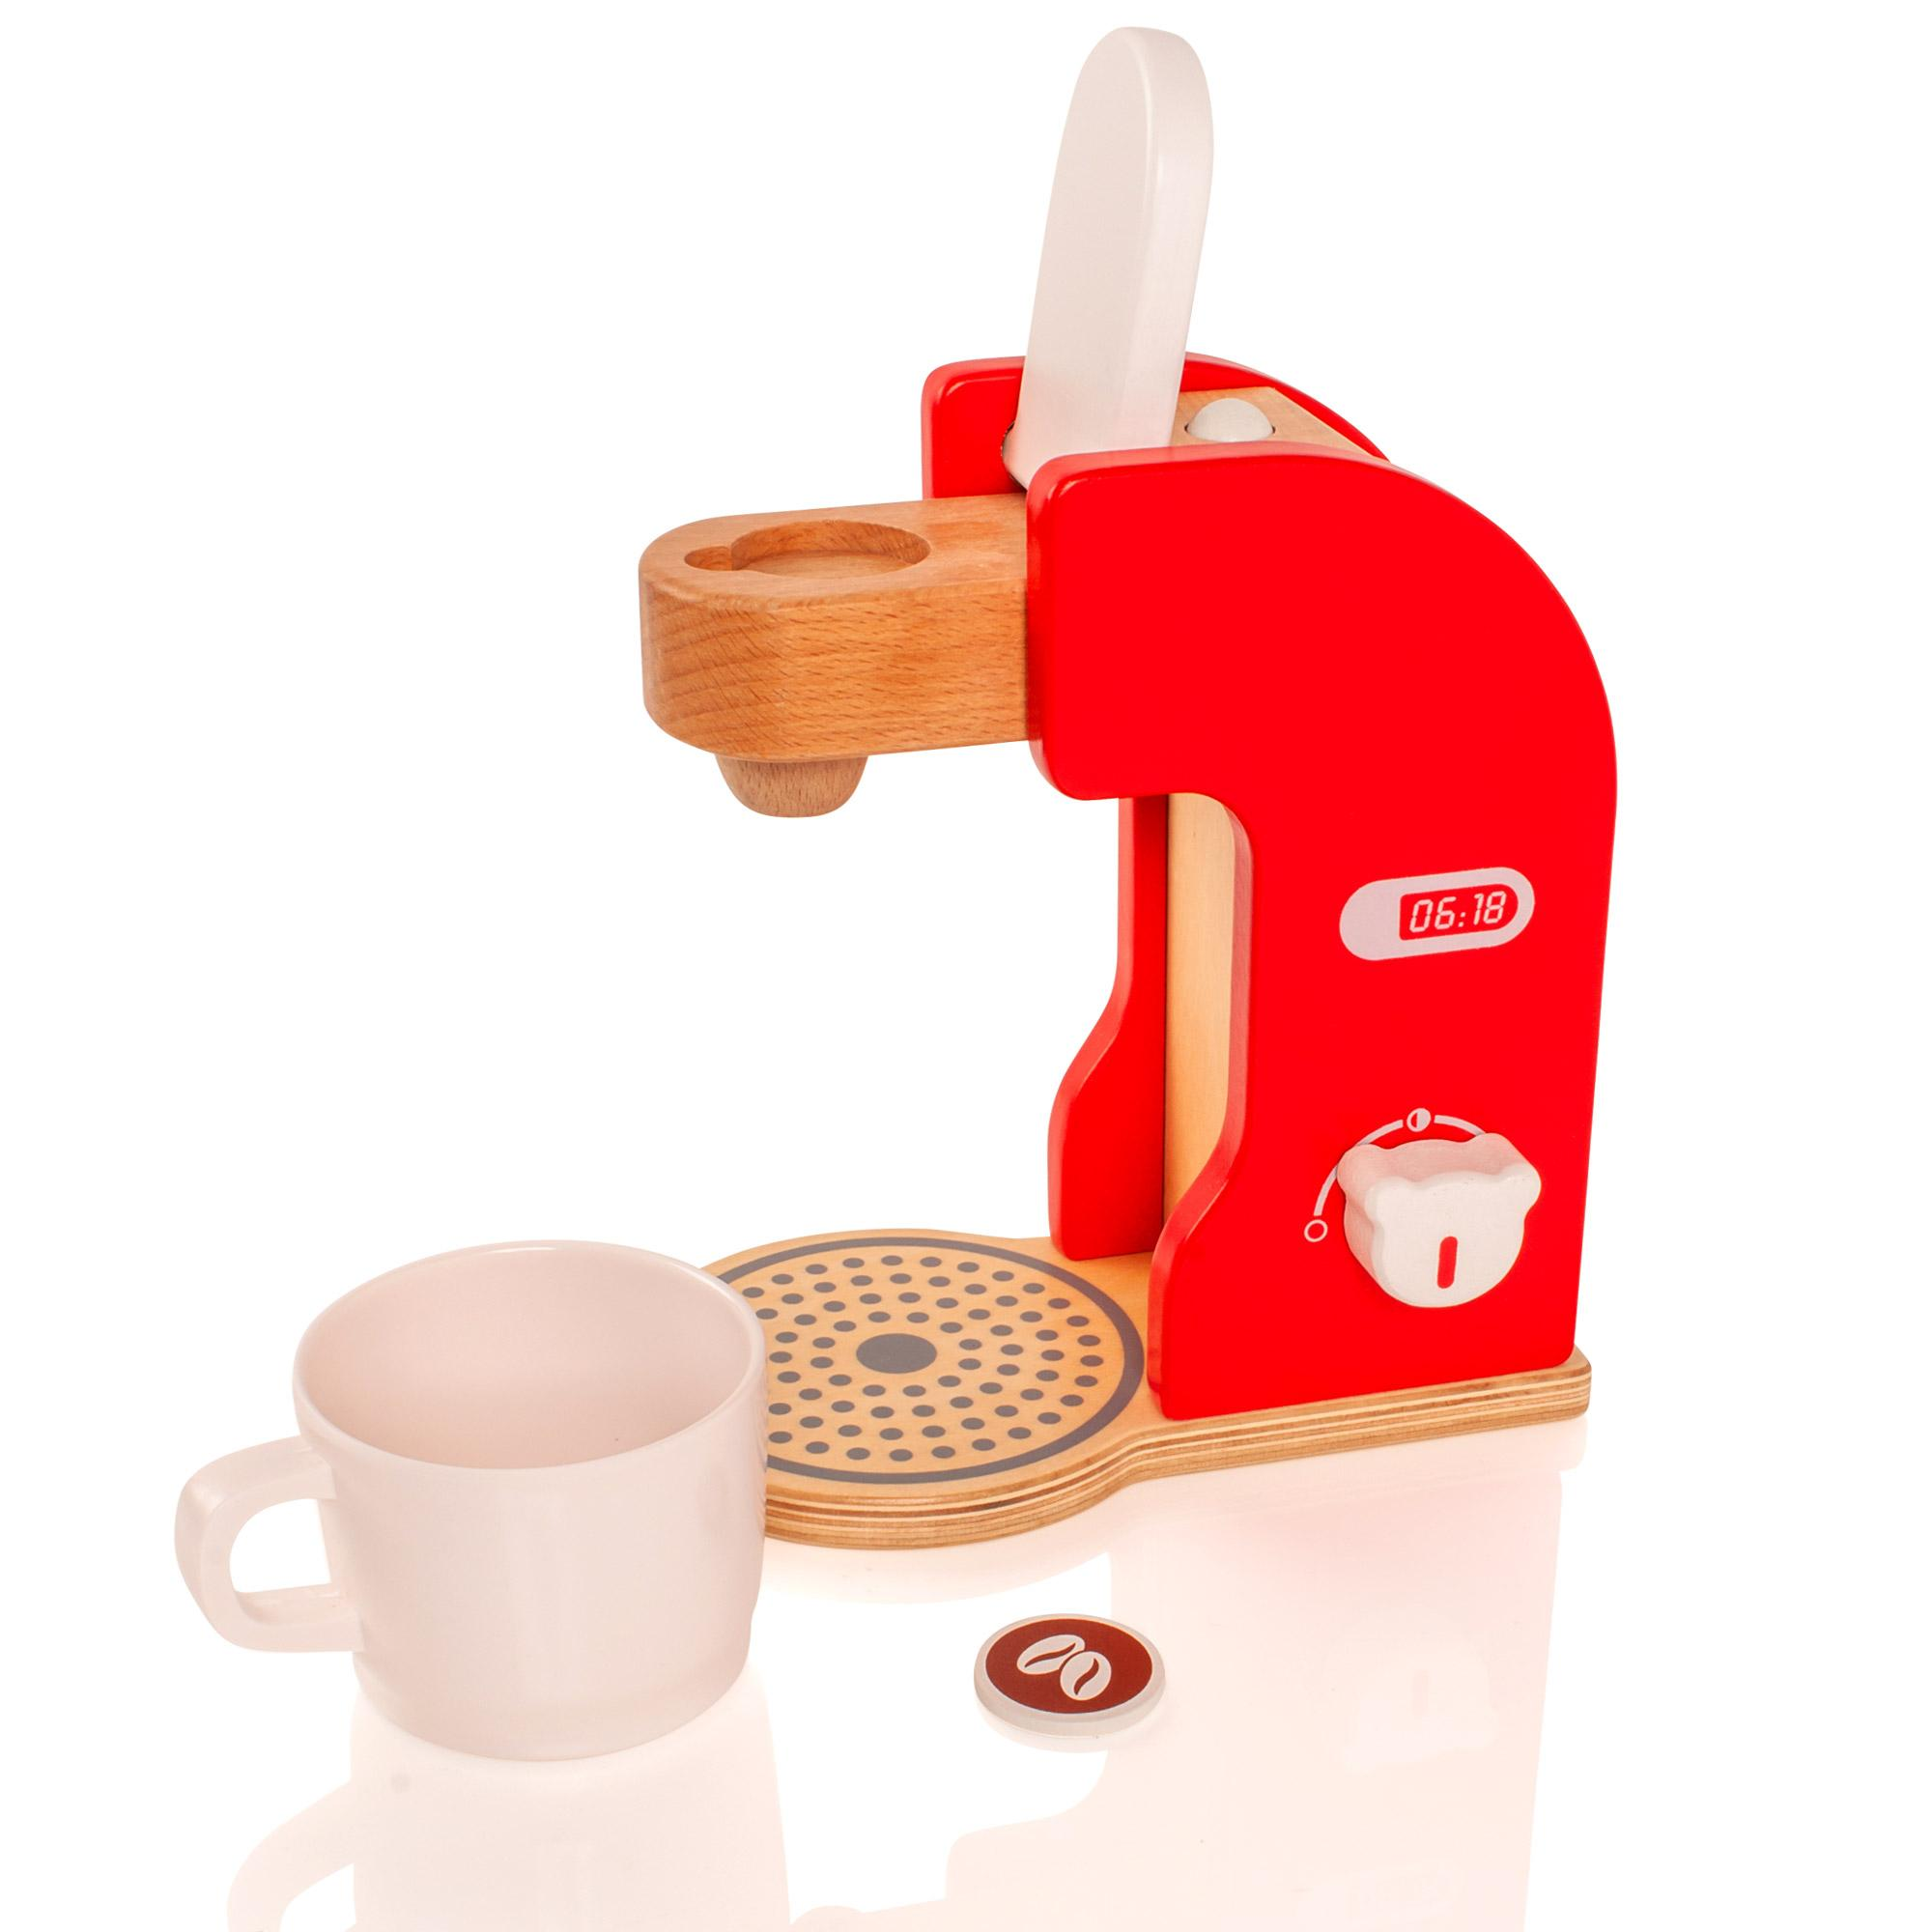 Wooden Childrens/Kids Kitchen Coffee Maker Machine Appliance Pretend Toy Playset eBay